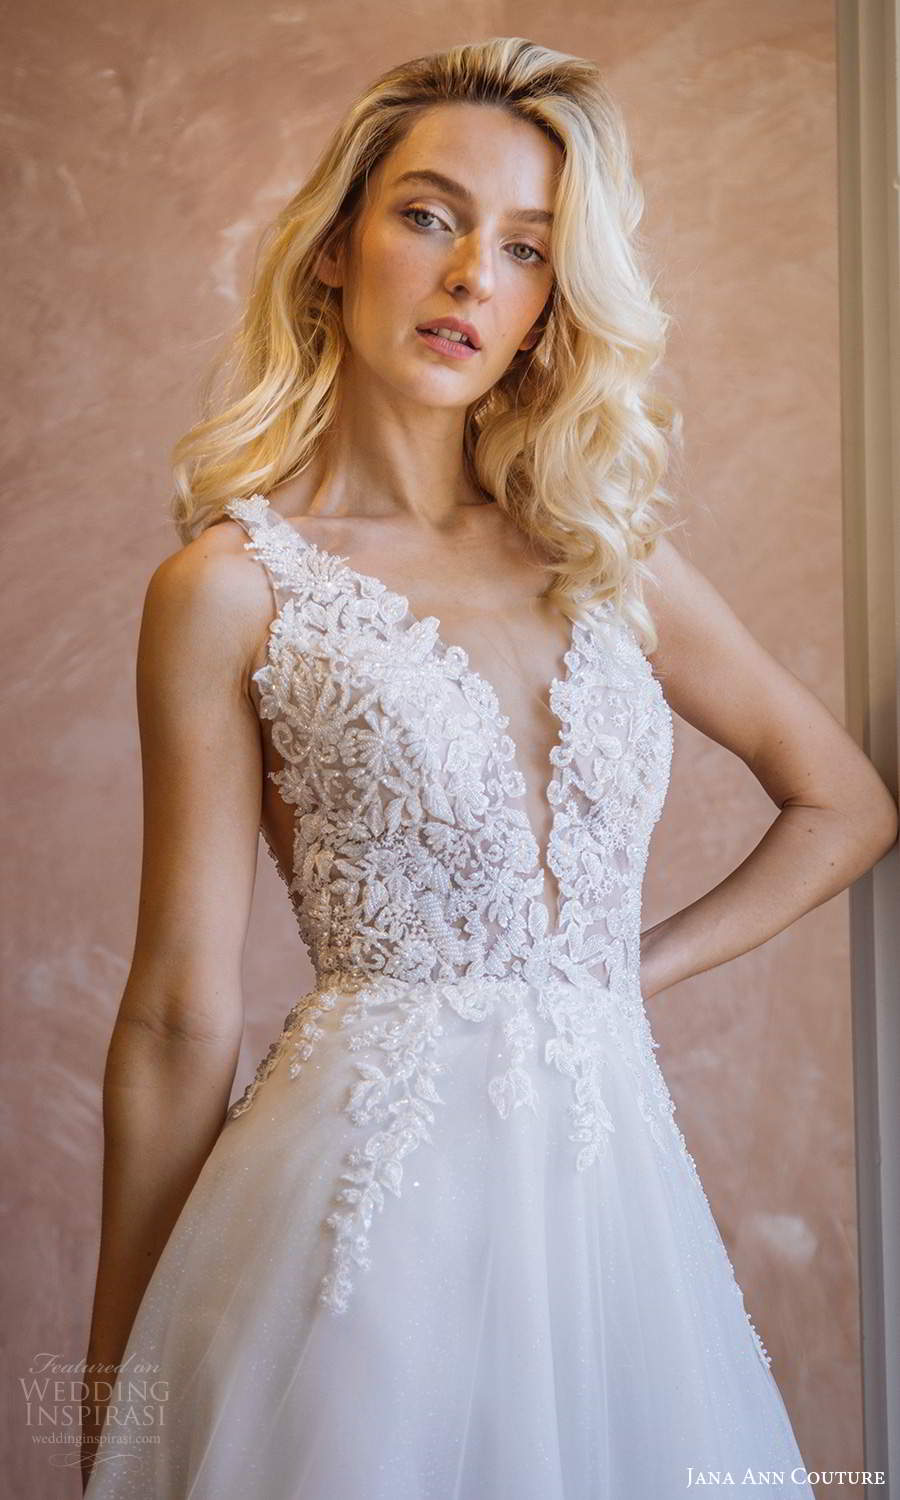 jana ann couture 2021 bridal sleeveless straps plunging v neckline heavily embellished bodice a line ball gown wedding dress (22) zv